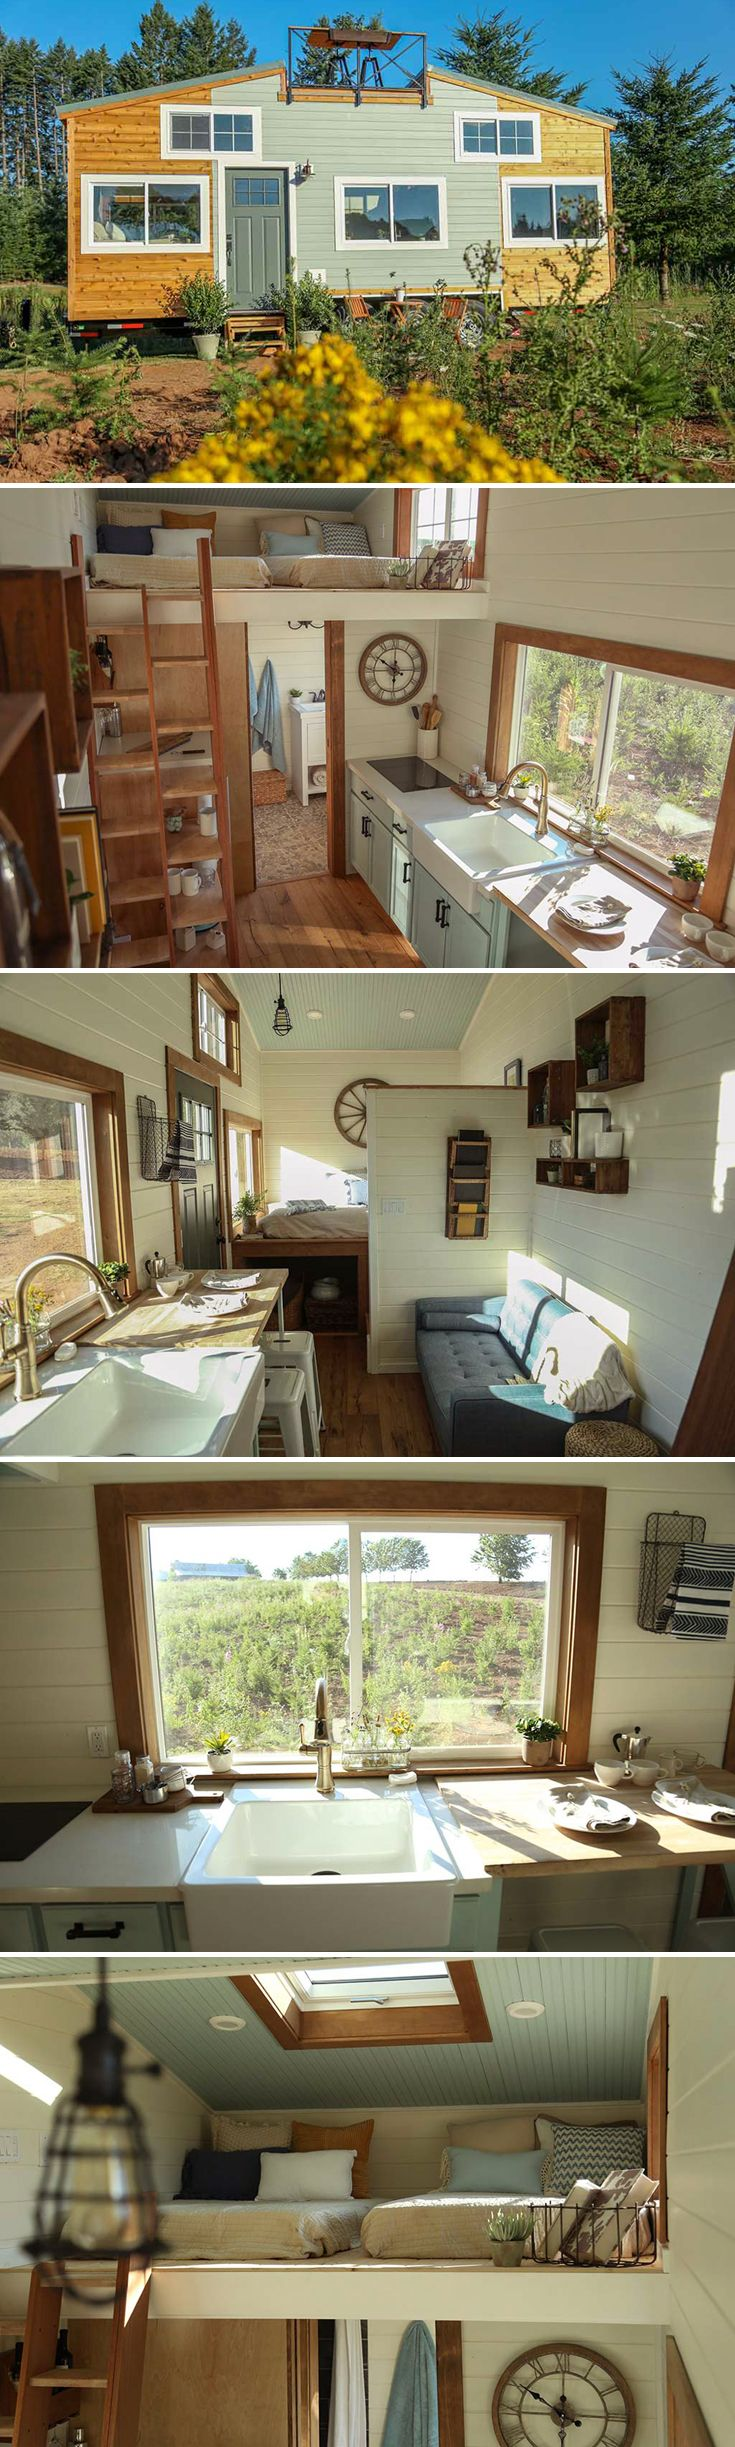 Modern tiny home boasts a big kitchen for foodies treehugger - Rustic Tiny Home By Tiny Heirloom